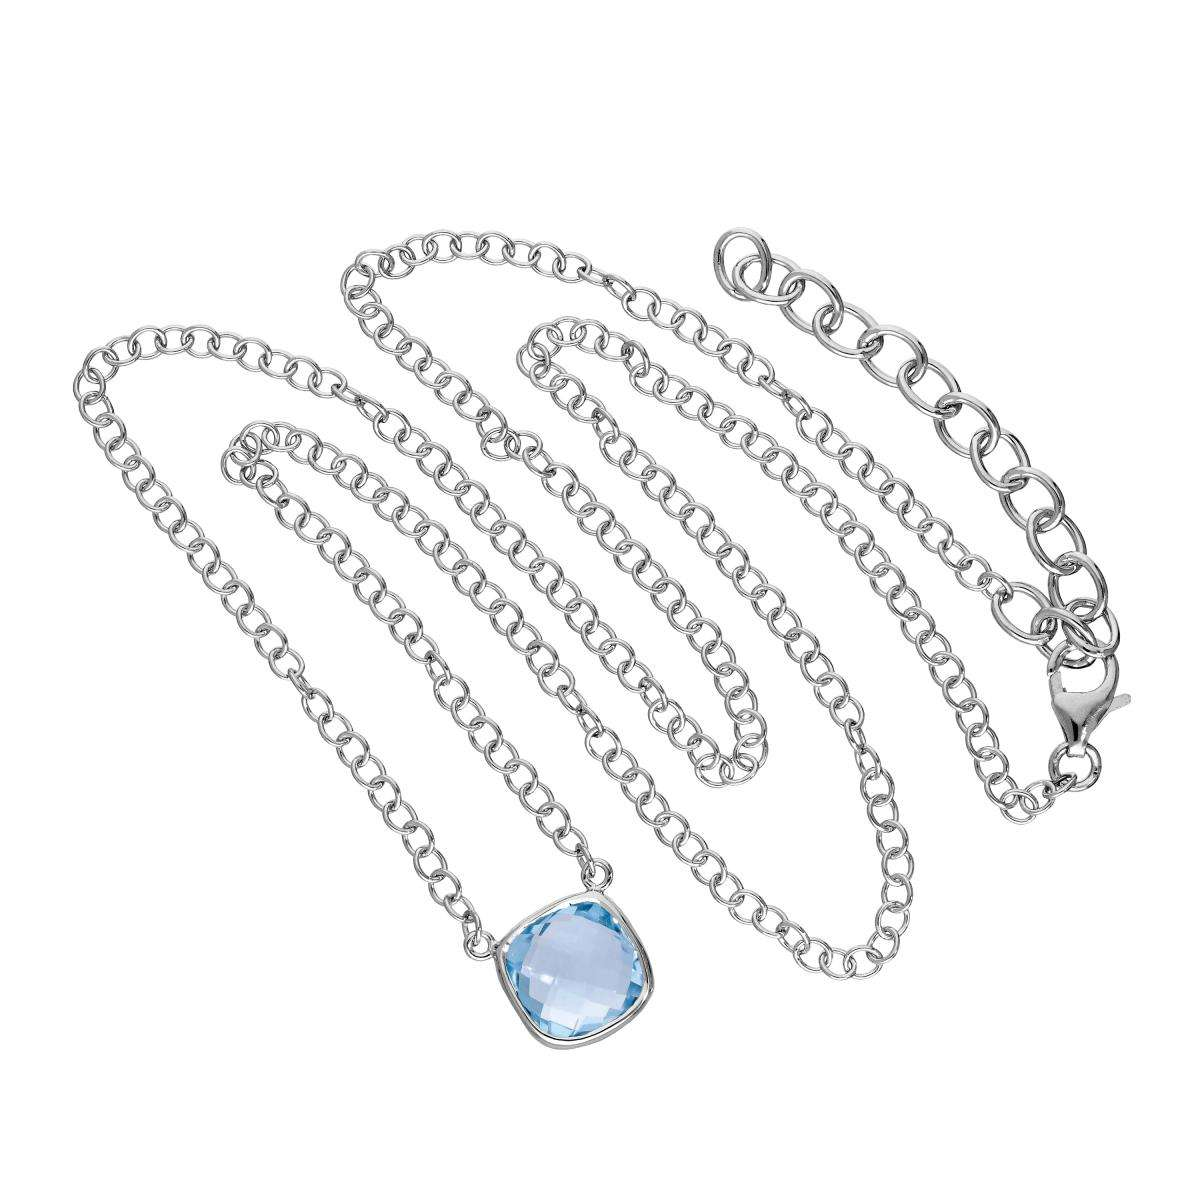 Alterative image for Sterling Silver & Genuine Sky Blue Topaz 18 Inch Necklace w 2 Inch Extender